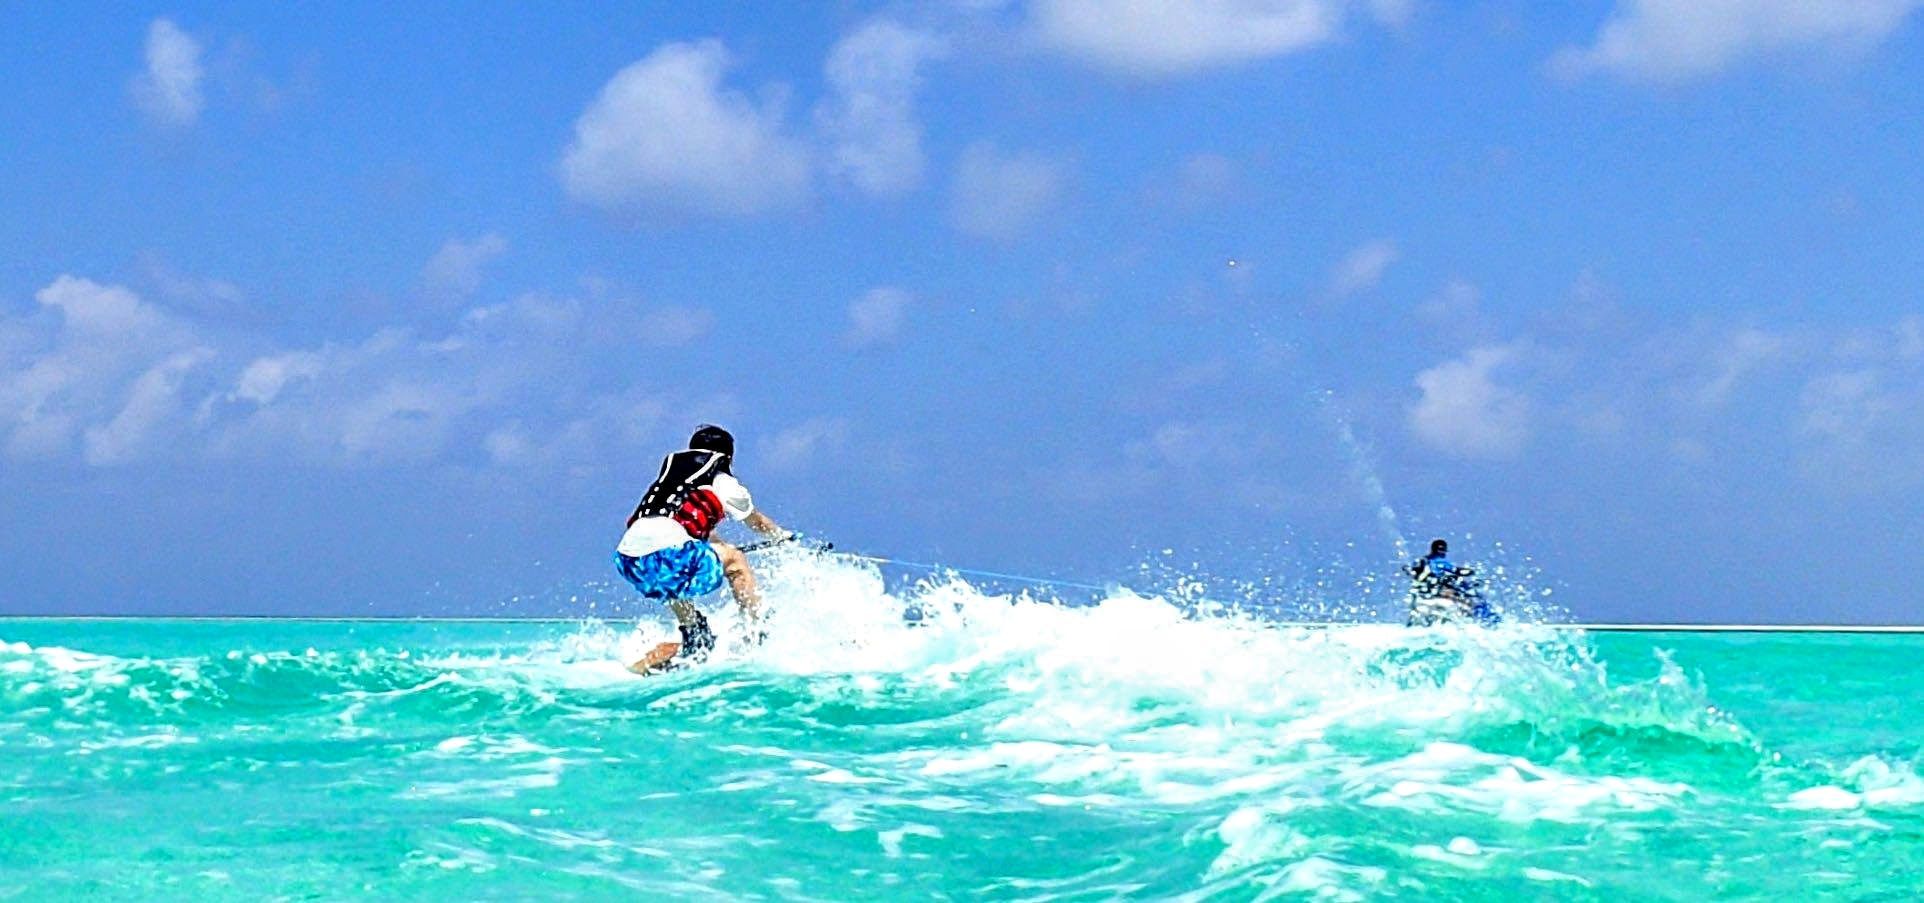 Mutteyfushi Island, Water Sports. Park Hyatt Maldives Hadahaa